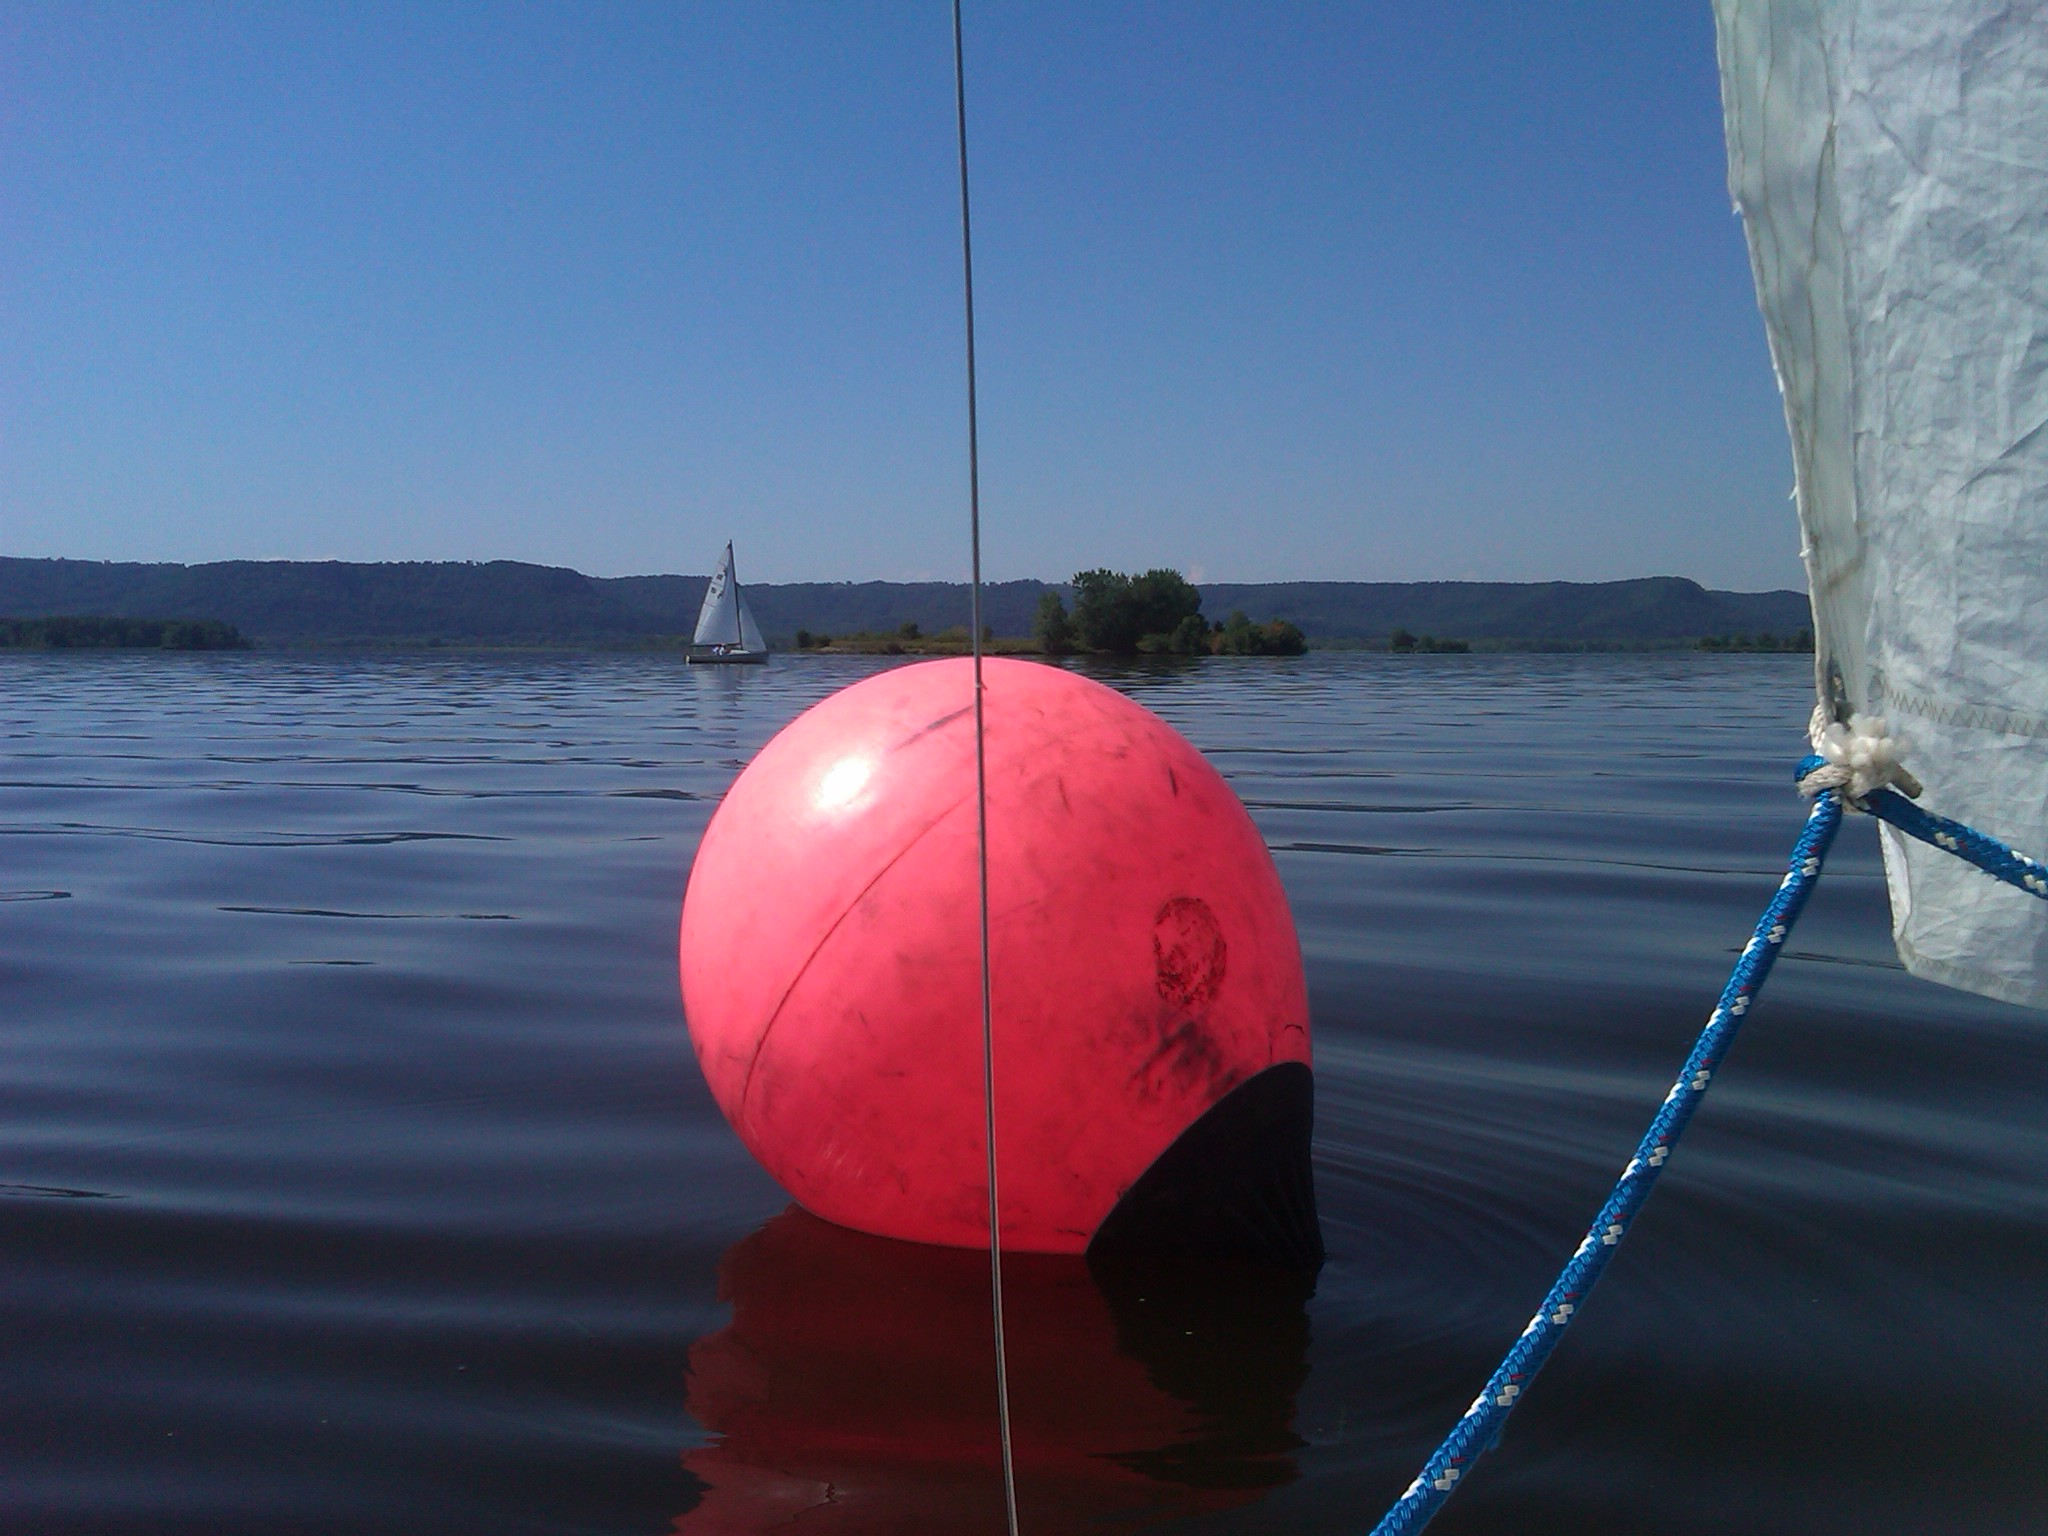 stalled at a racing buoy